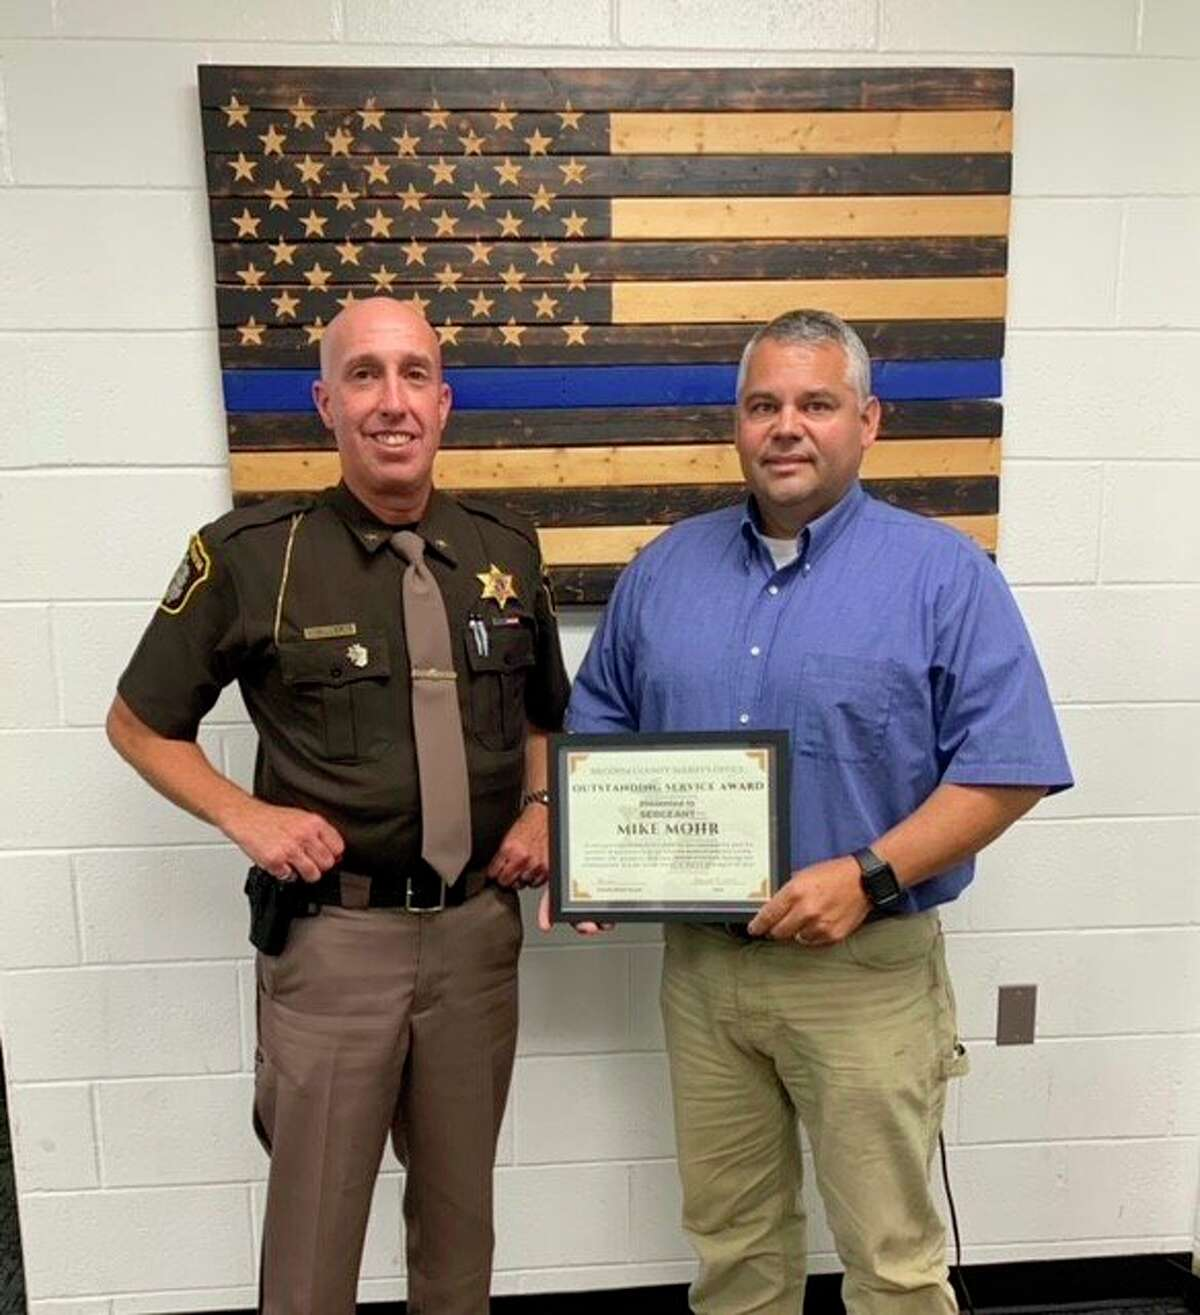 Sgt. Mike Mohr (right), of the Mecosta County Sheriff'sOffice,received the Outstanding Service Award from Sheriff Brian Miller (left). (Photo courtesy of the Mecosta County Sheriff's department)